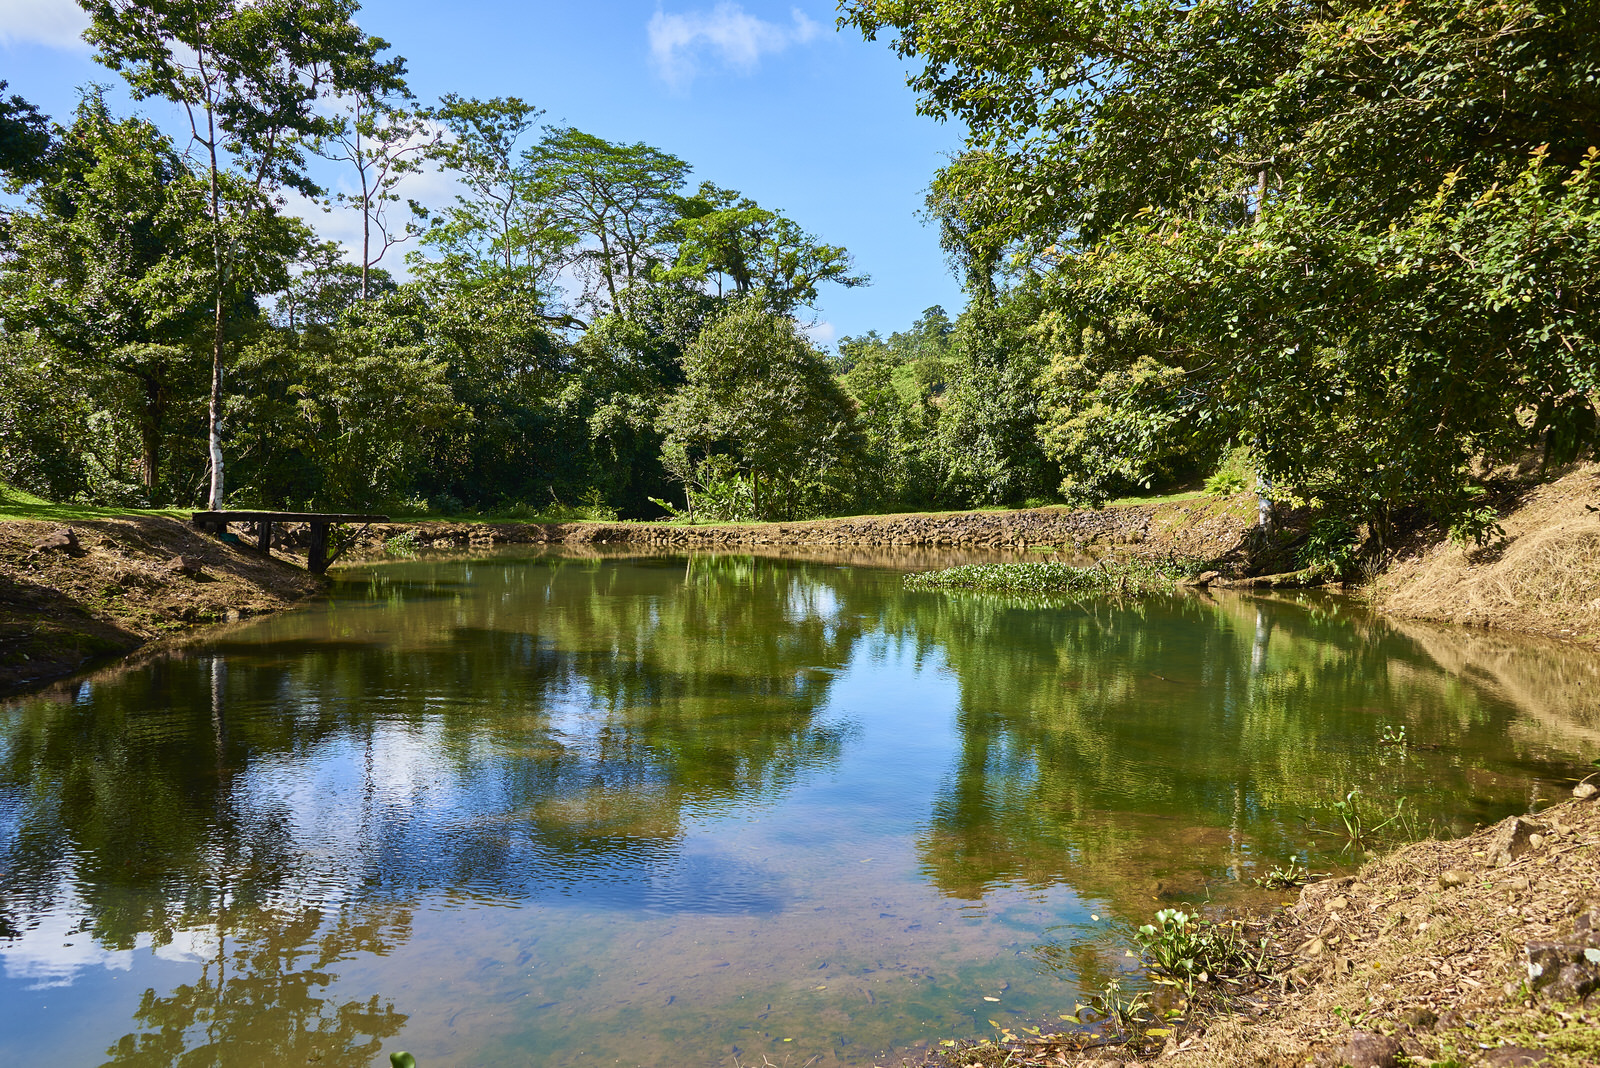 Pond at Finca Experimental Cata